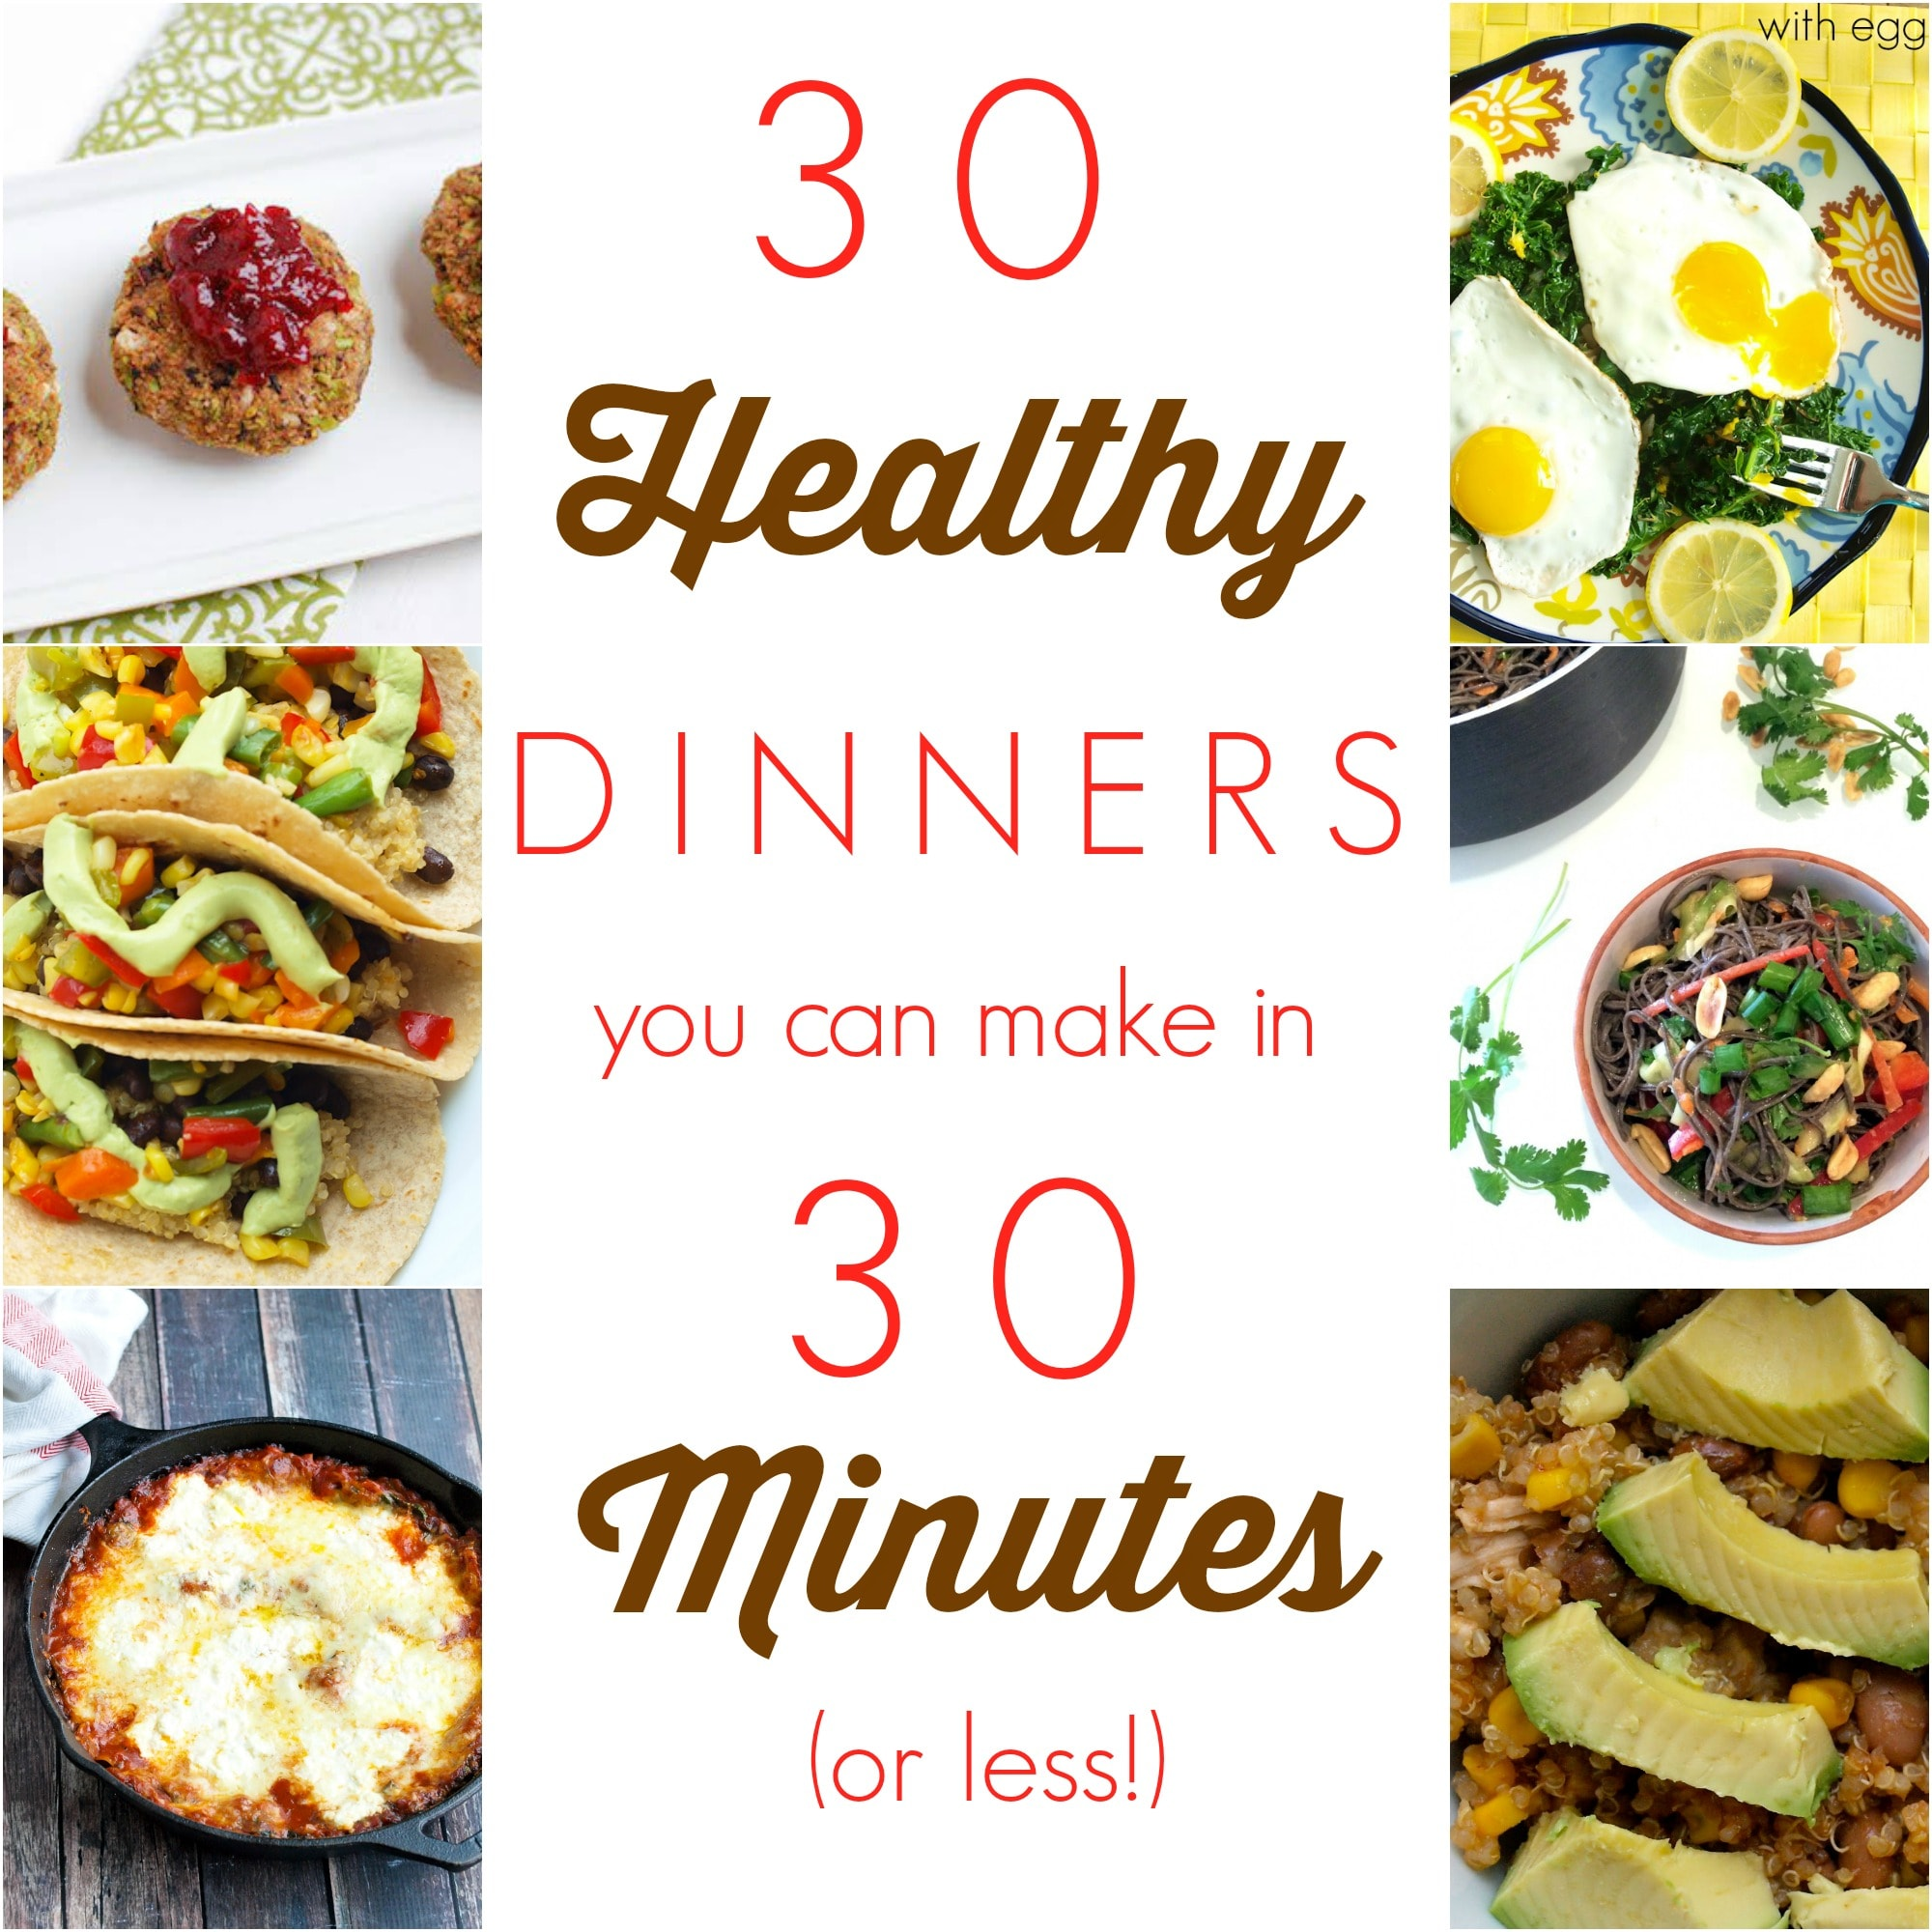 30 Healthy Dinners that you can make in 30 minutes or less!  Jackpot!! All of these dinners are whole food, healthy dinner recipes that you can make super fast.